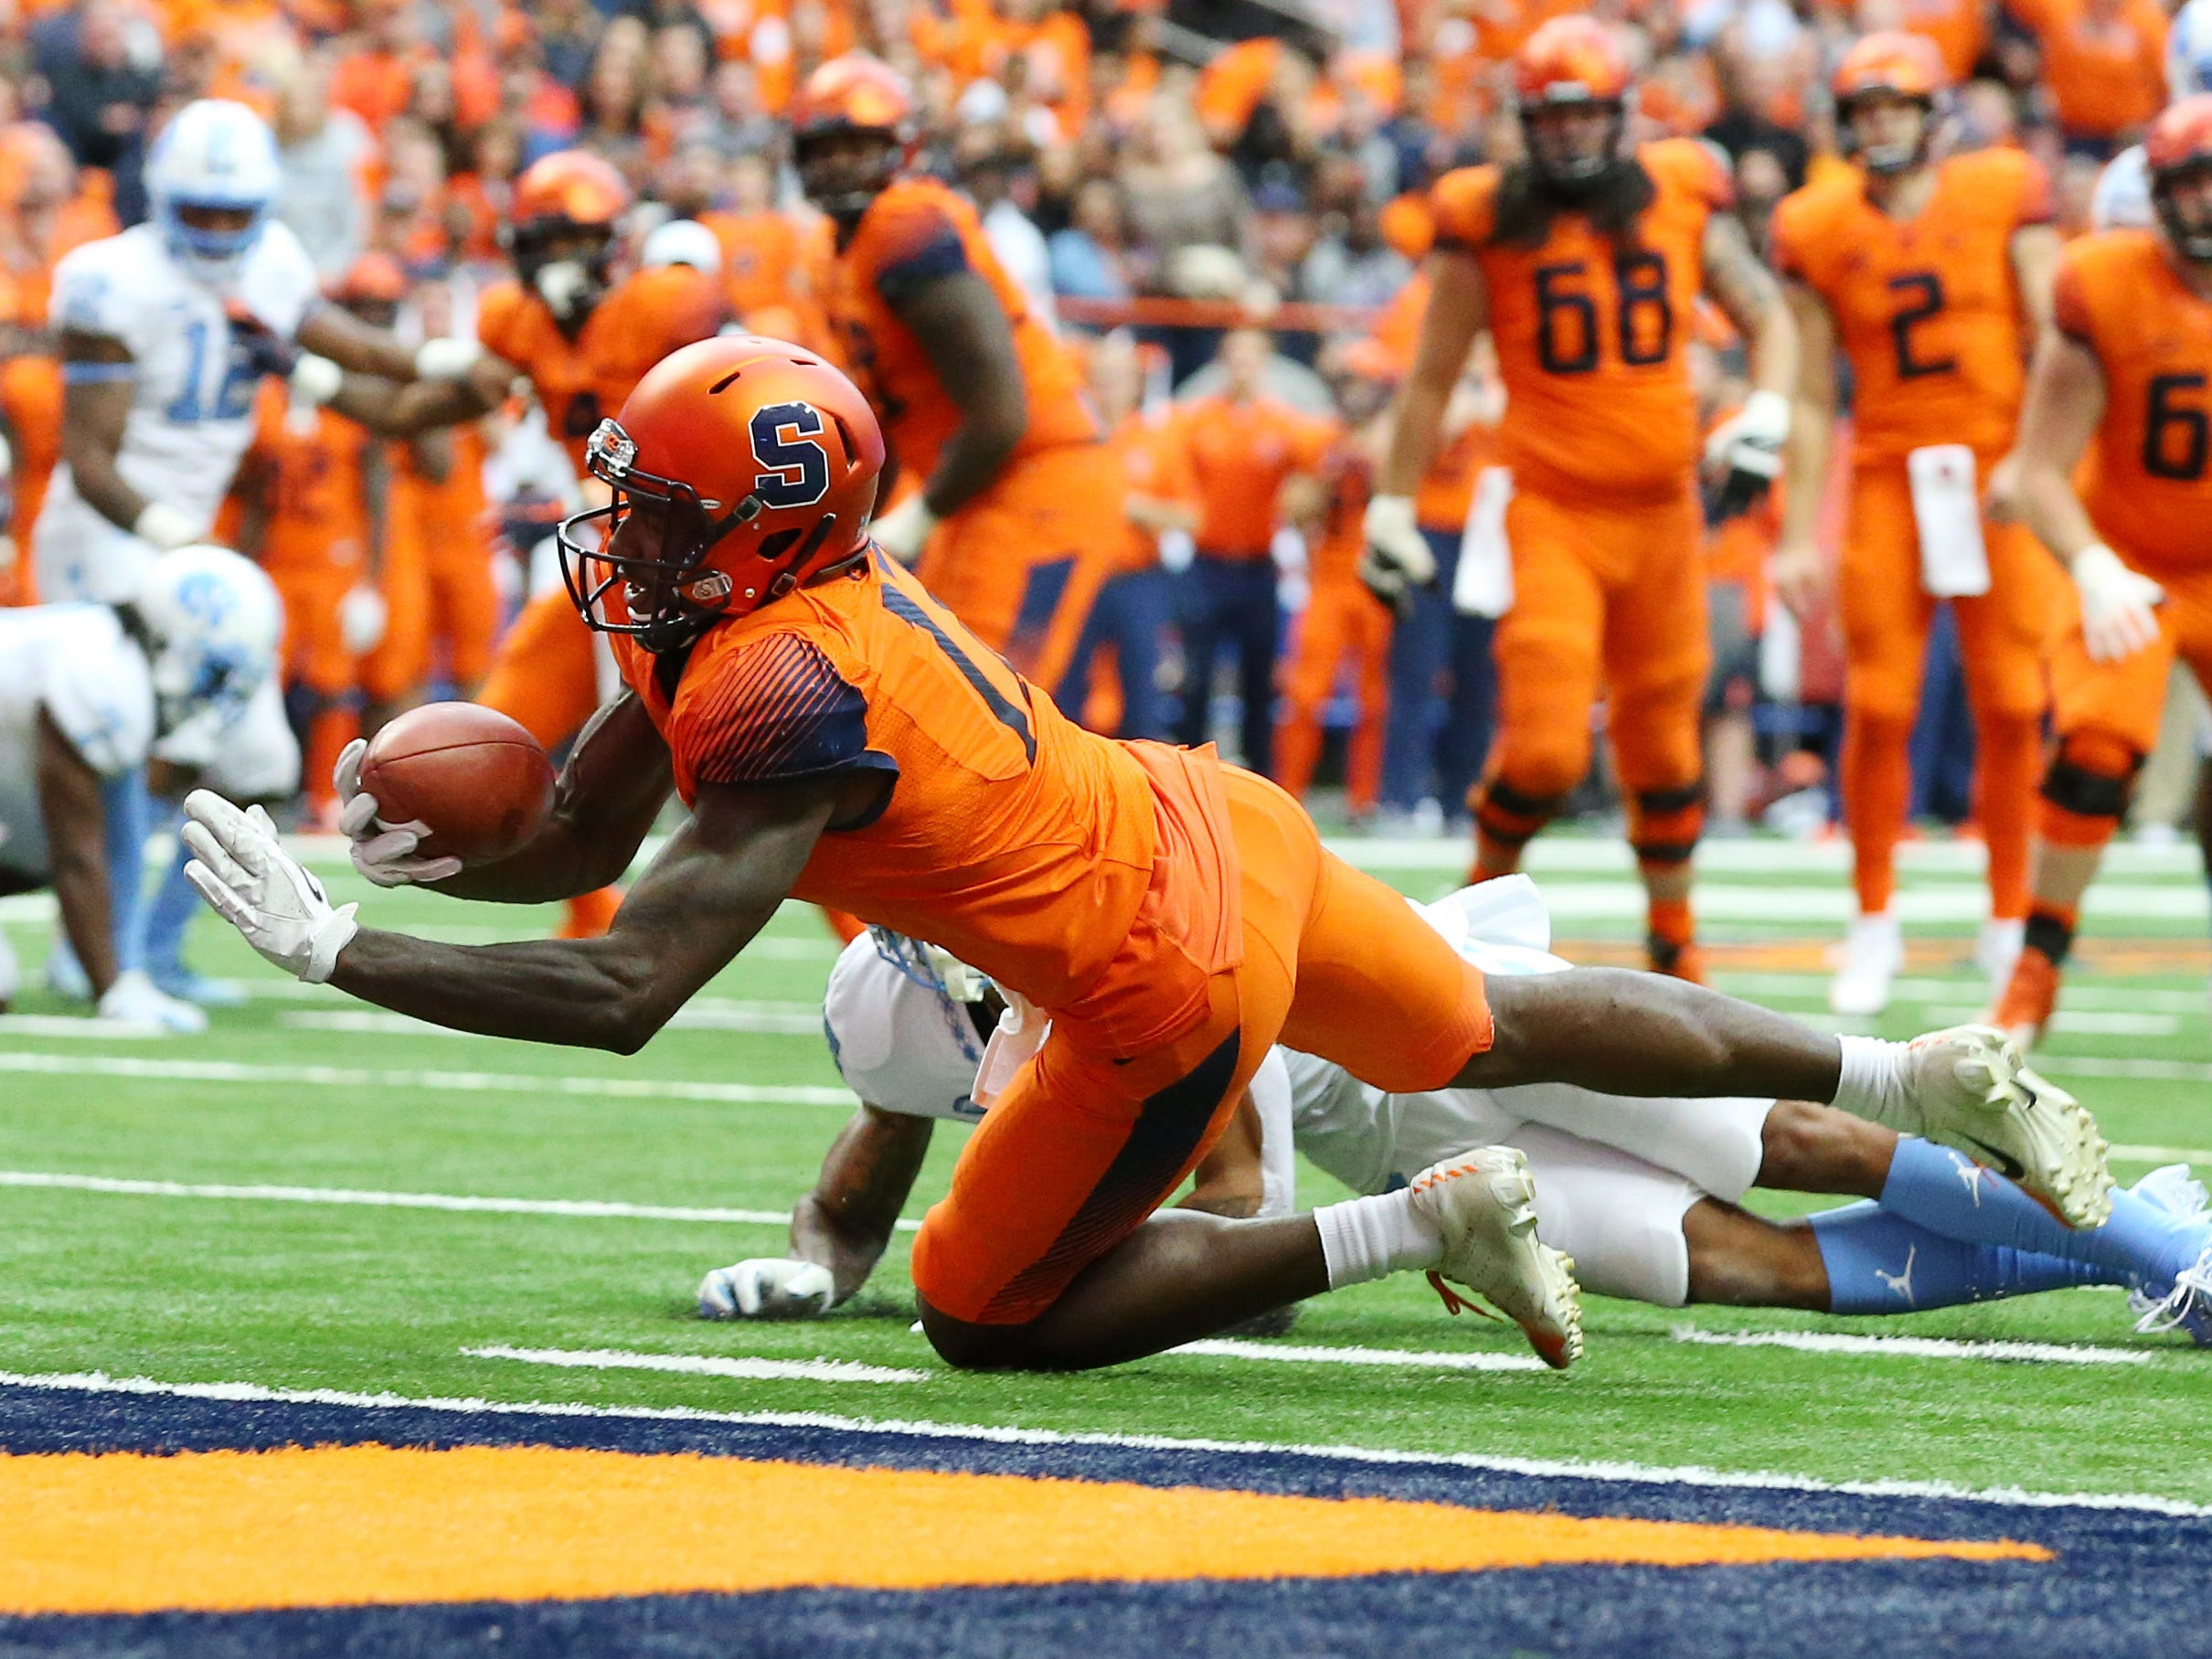 Syracuse Orange wide receiver Jamal Custis catches a pass short of the end zone against the North Carolina Tar Heels during the second quarter at the Carrier Dome.